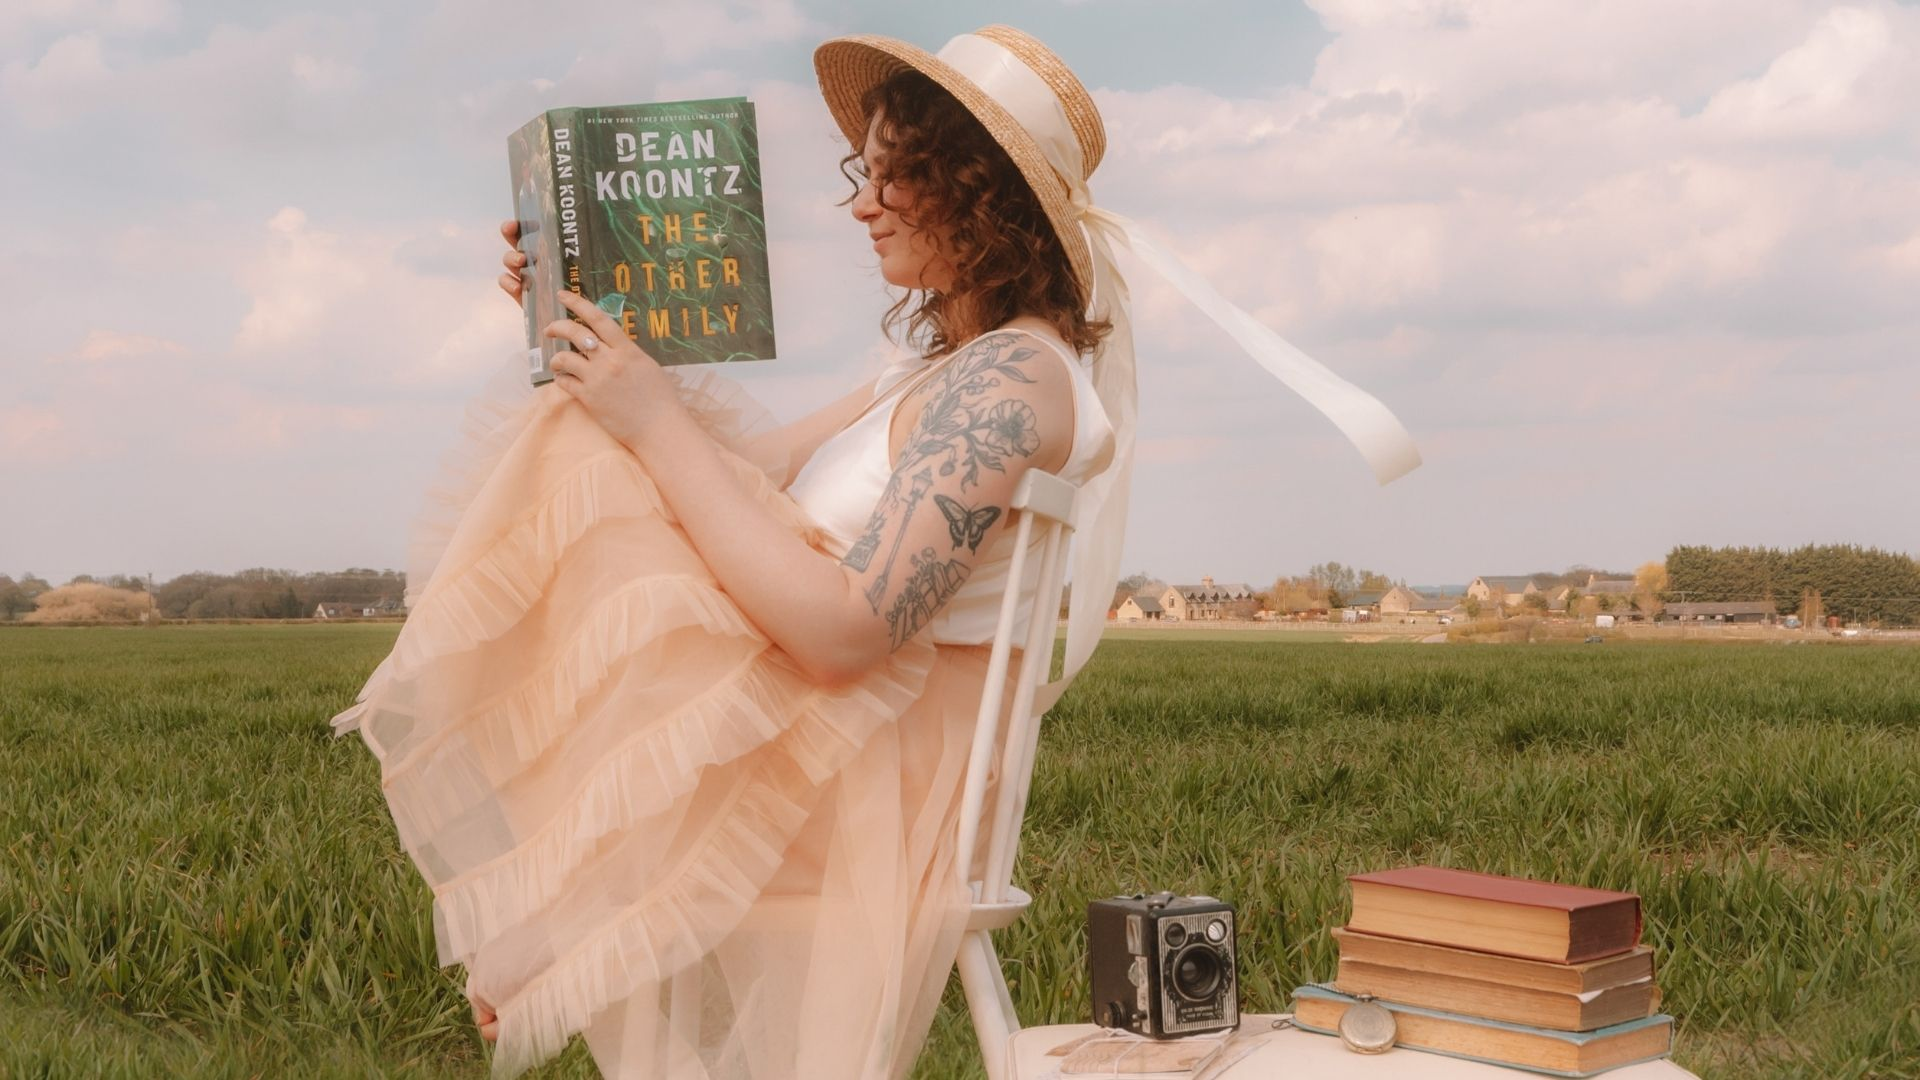 THE OTHER EMILY BOOK REVIEW @FromBeeWithView Bronte Huskinson